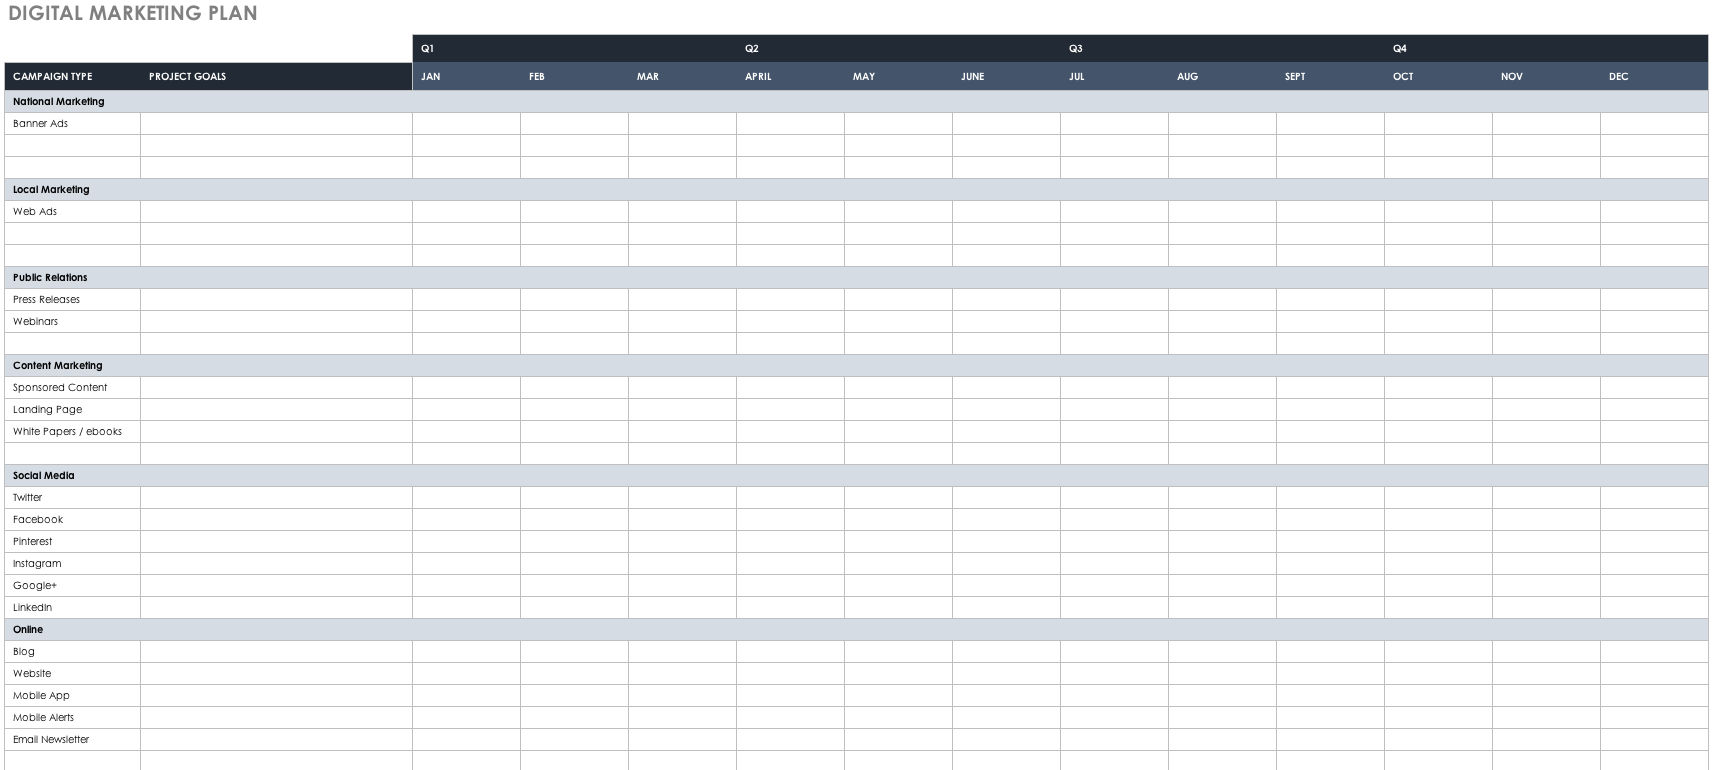 Free Marketing Plan Templates For Excel | Smartsheet As Well As Marketing Spreadsheet Template